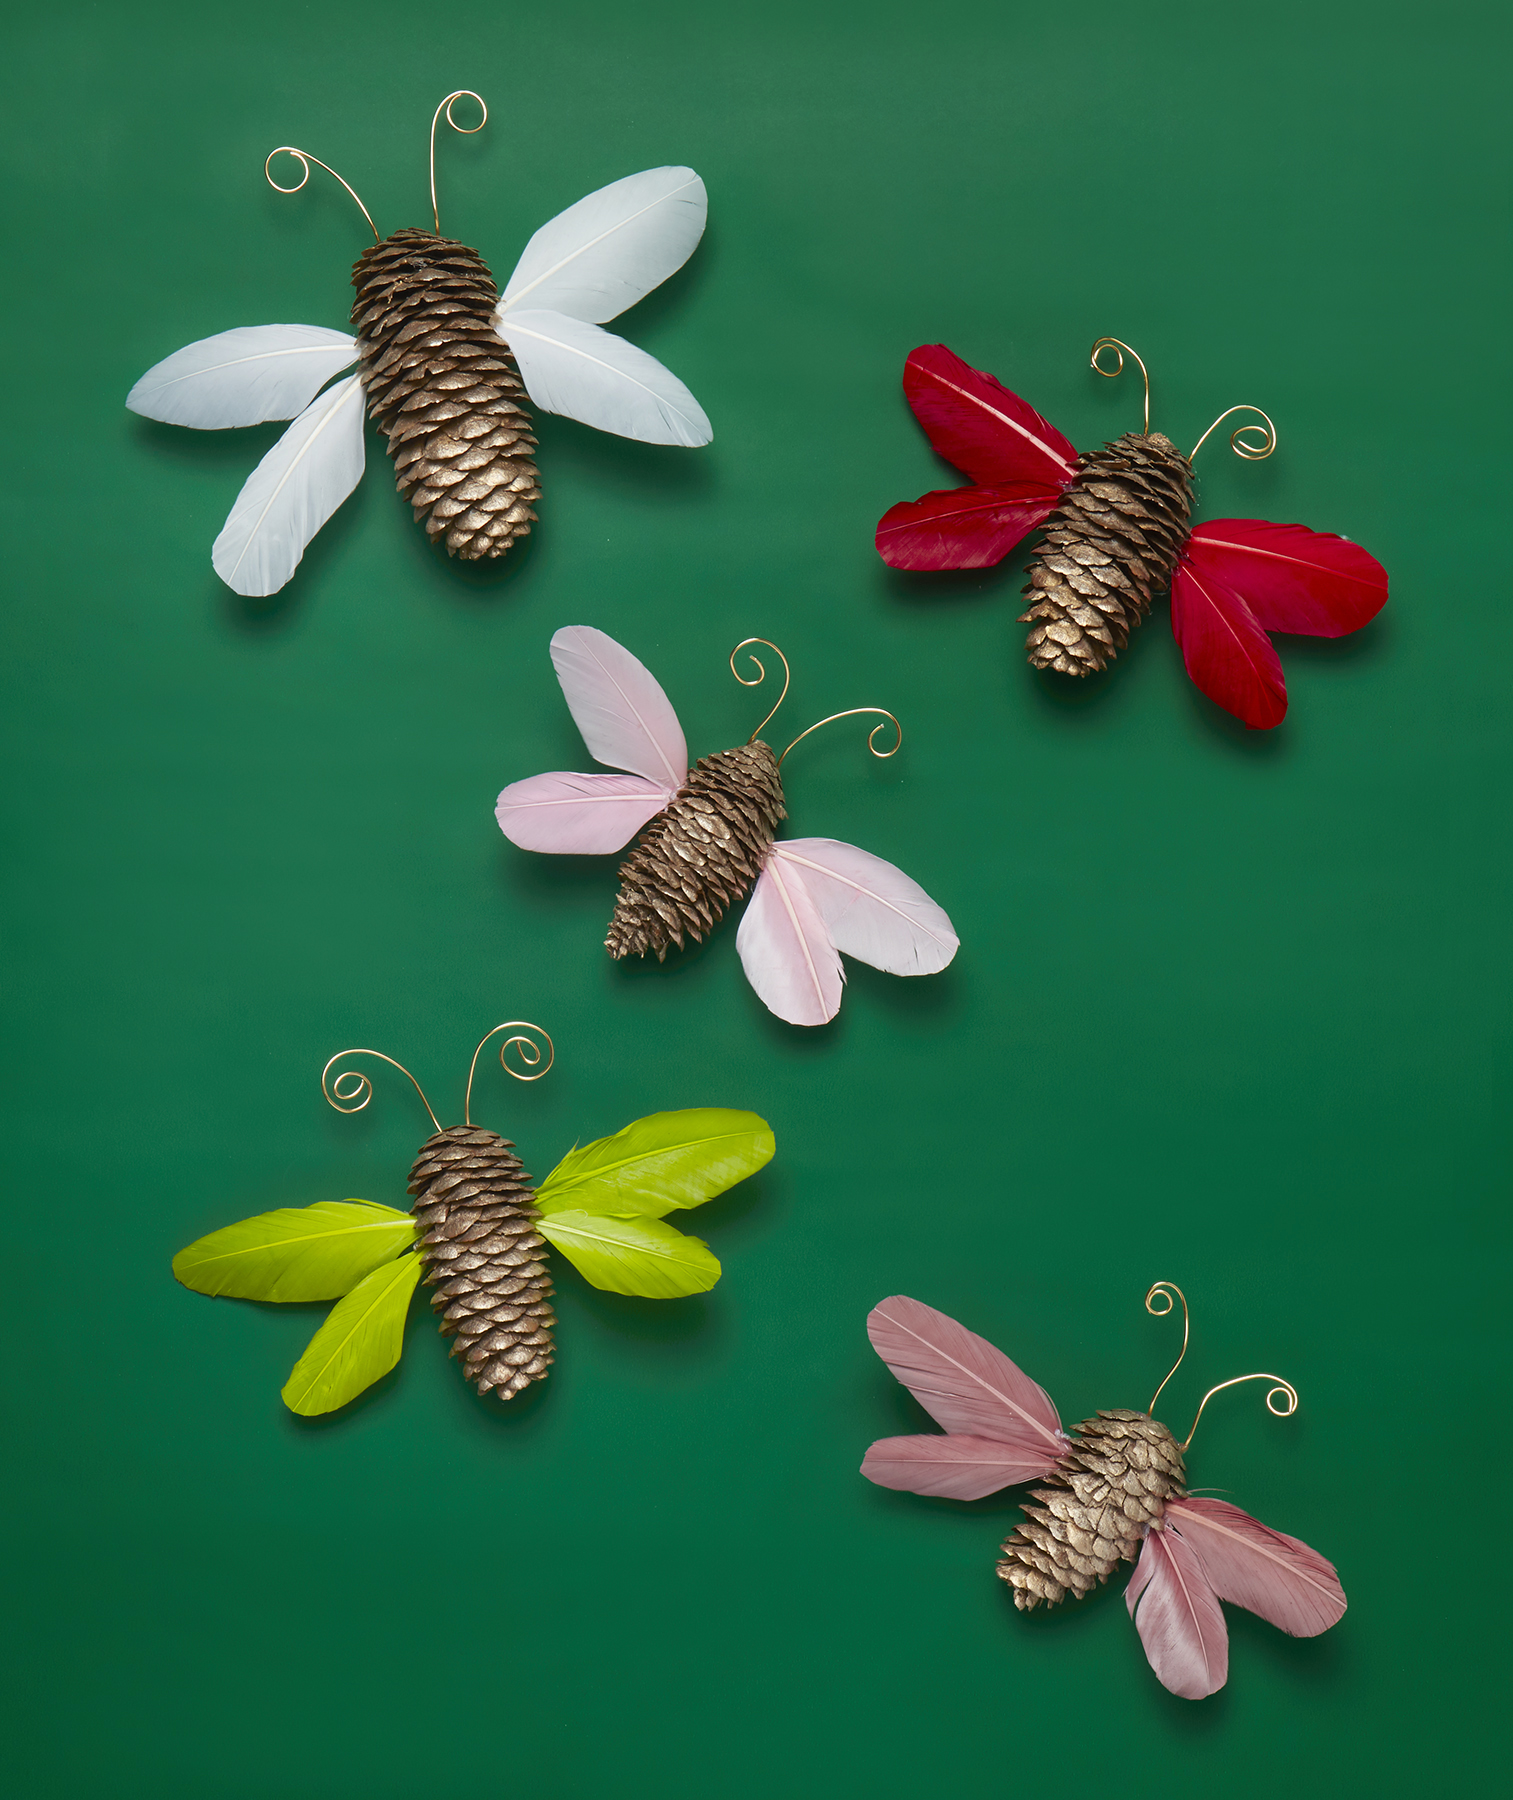 Christmas crafts ideas - Pinecone Butterfly Ornaments